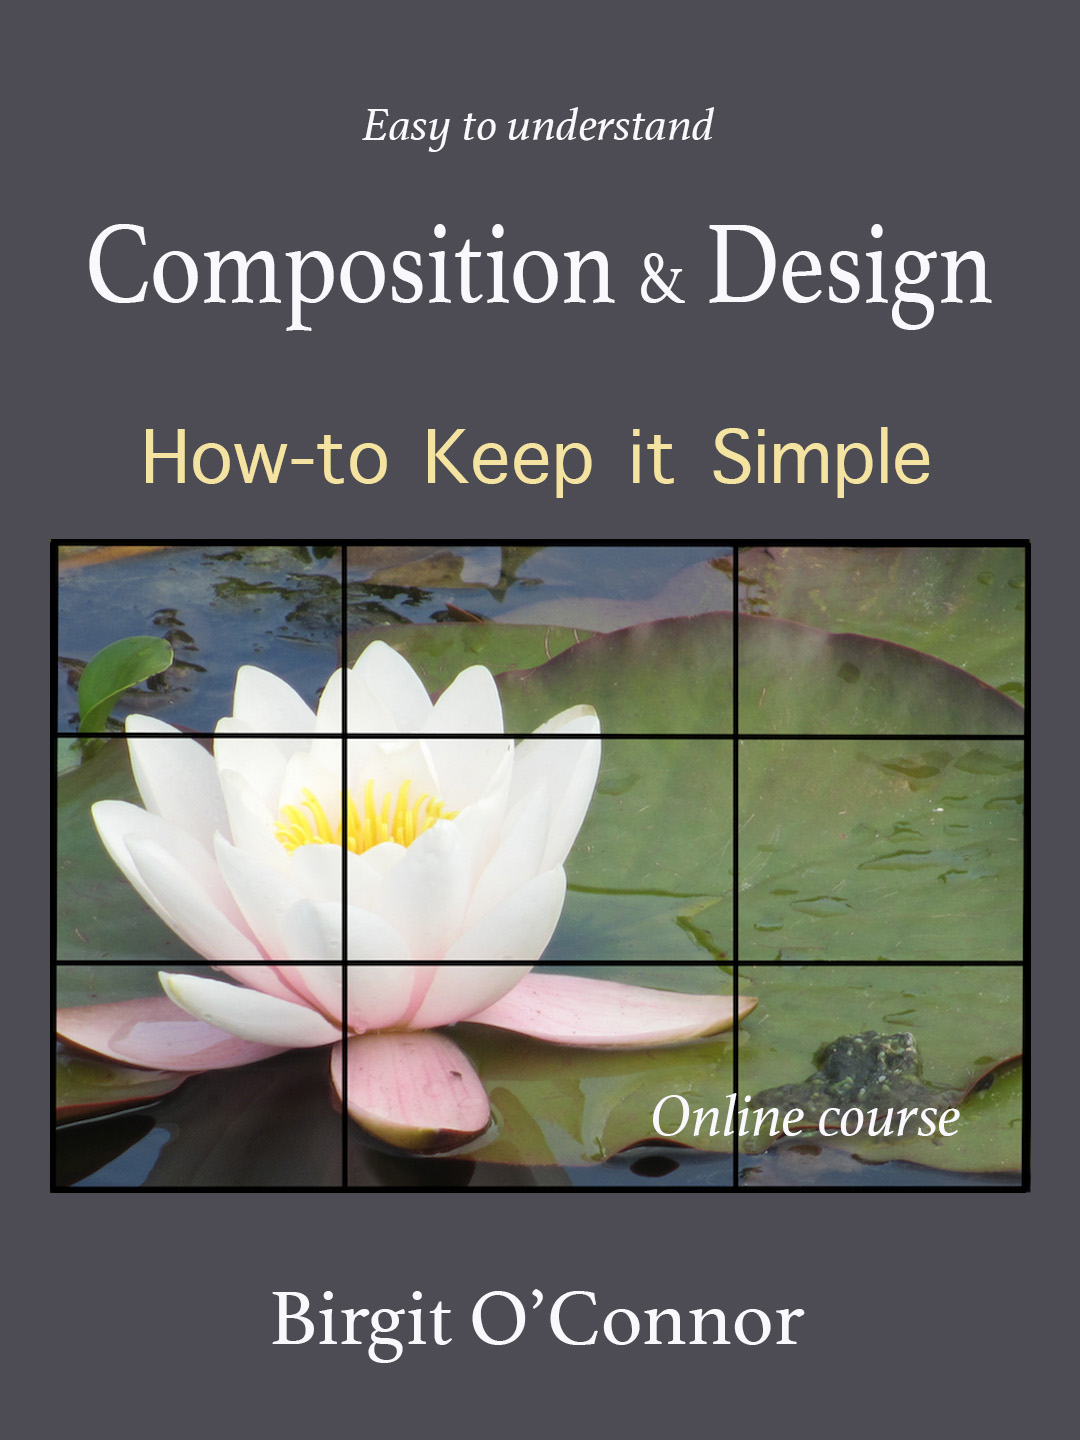 Easy to Understand Composition and Design and How-to Keep it Simple (Online Course) [Online Code] by Birgit O'Connor